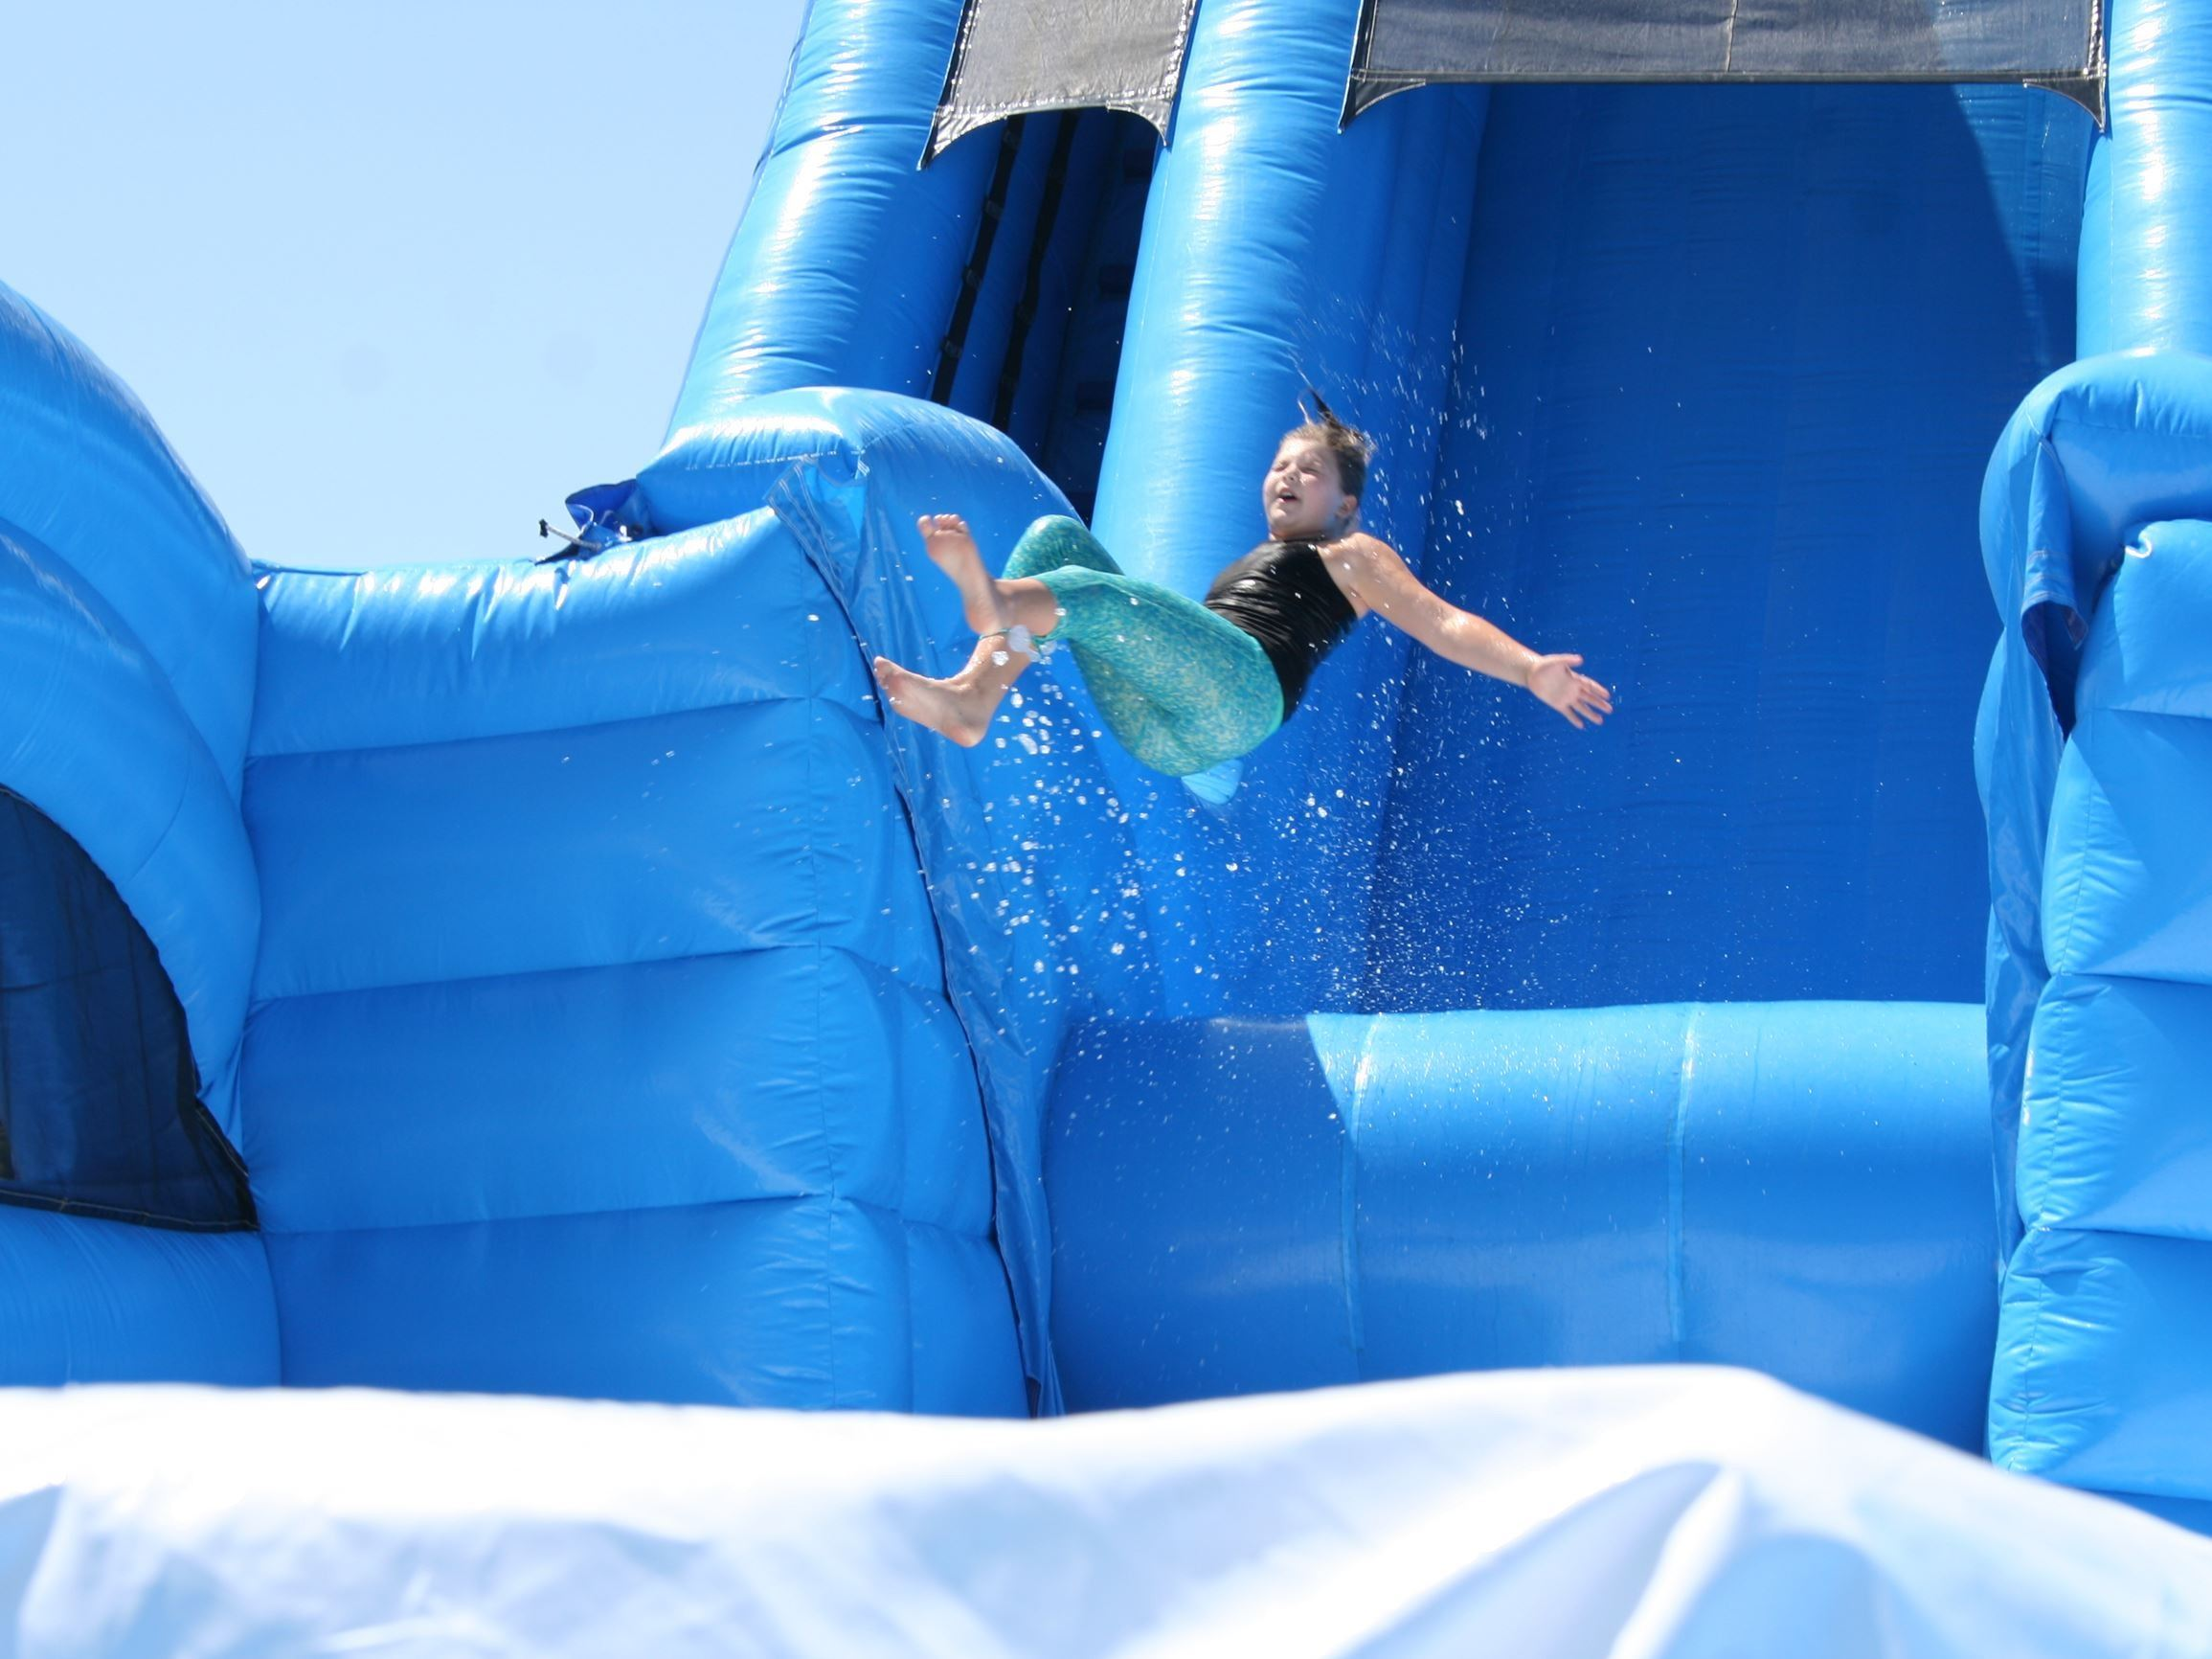 Boy on Water Slide